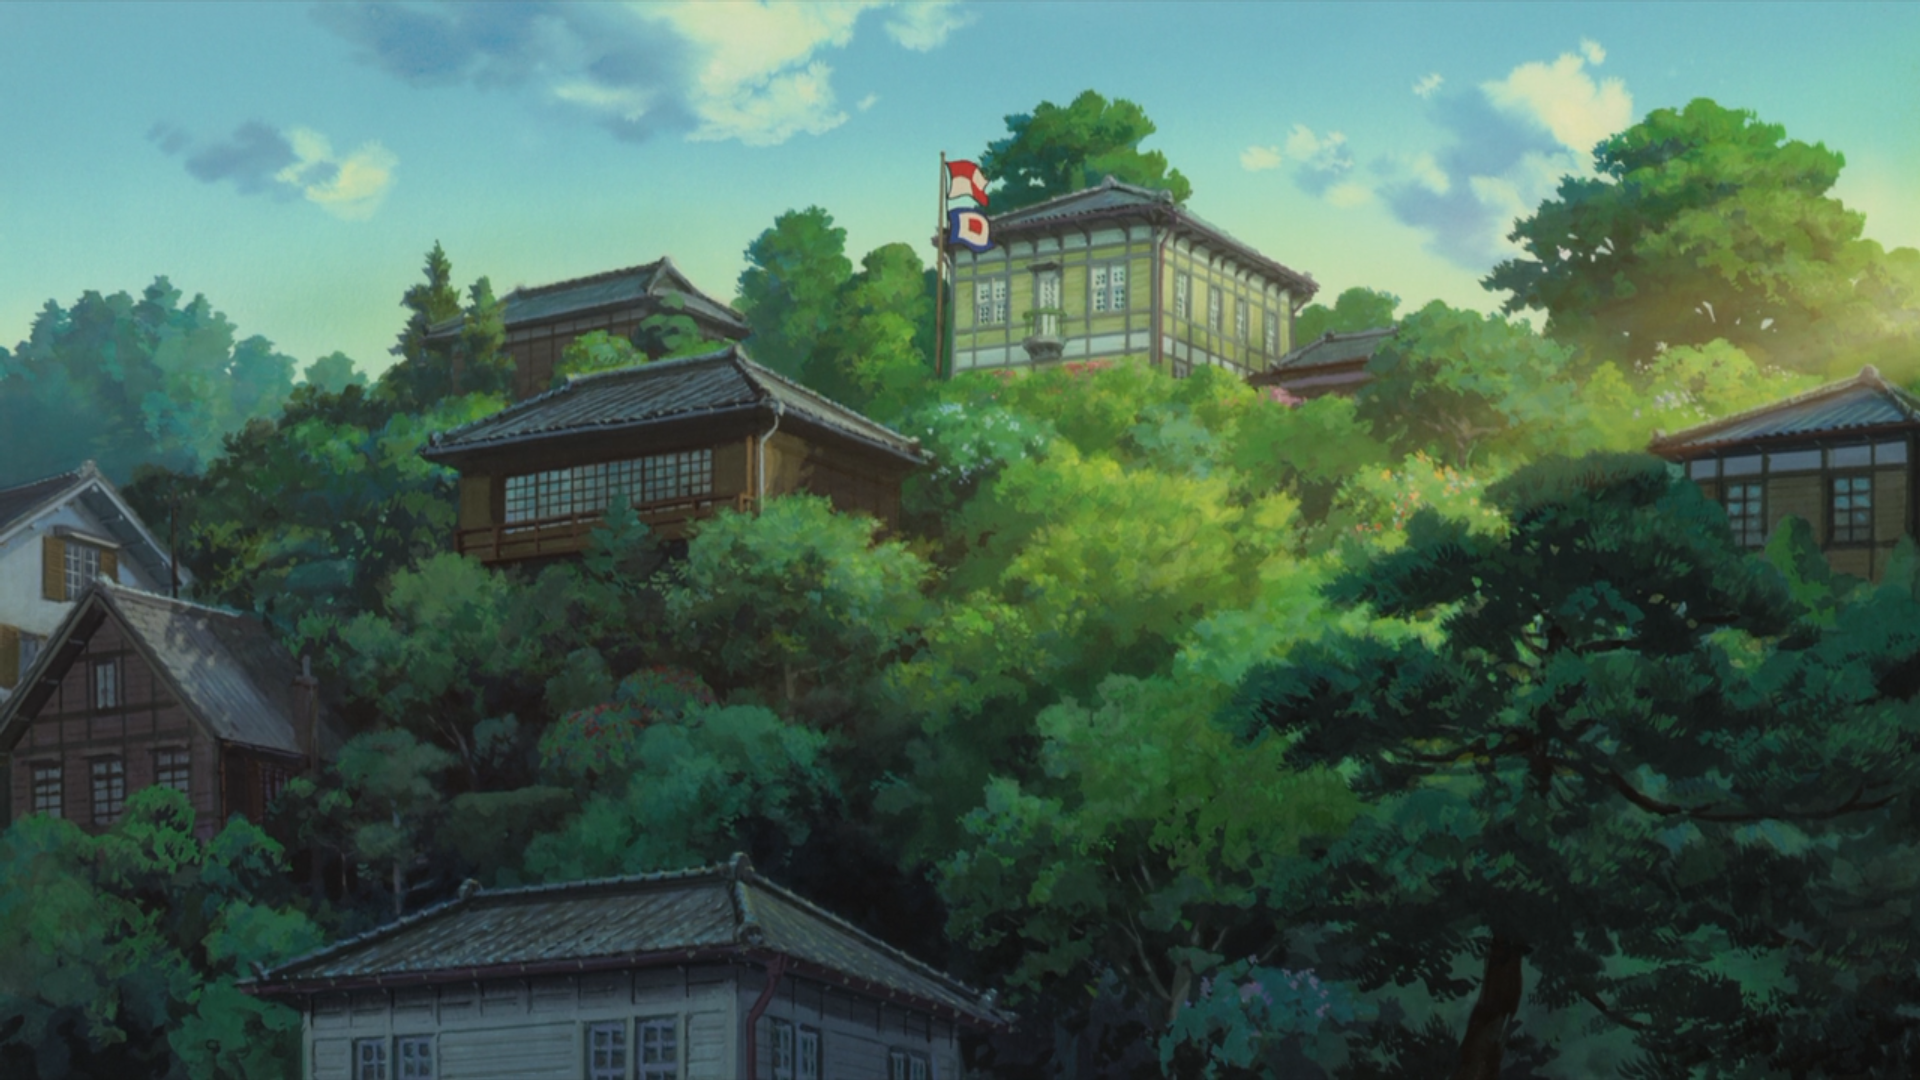 studio ghibli backgrounds!, For portlybibliophile, some